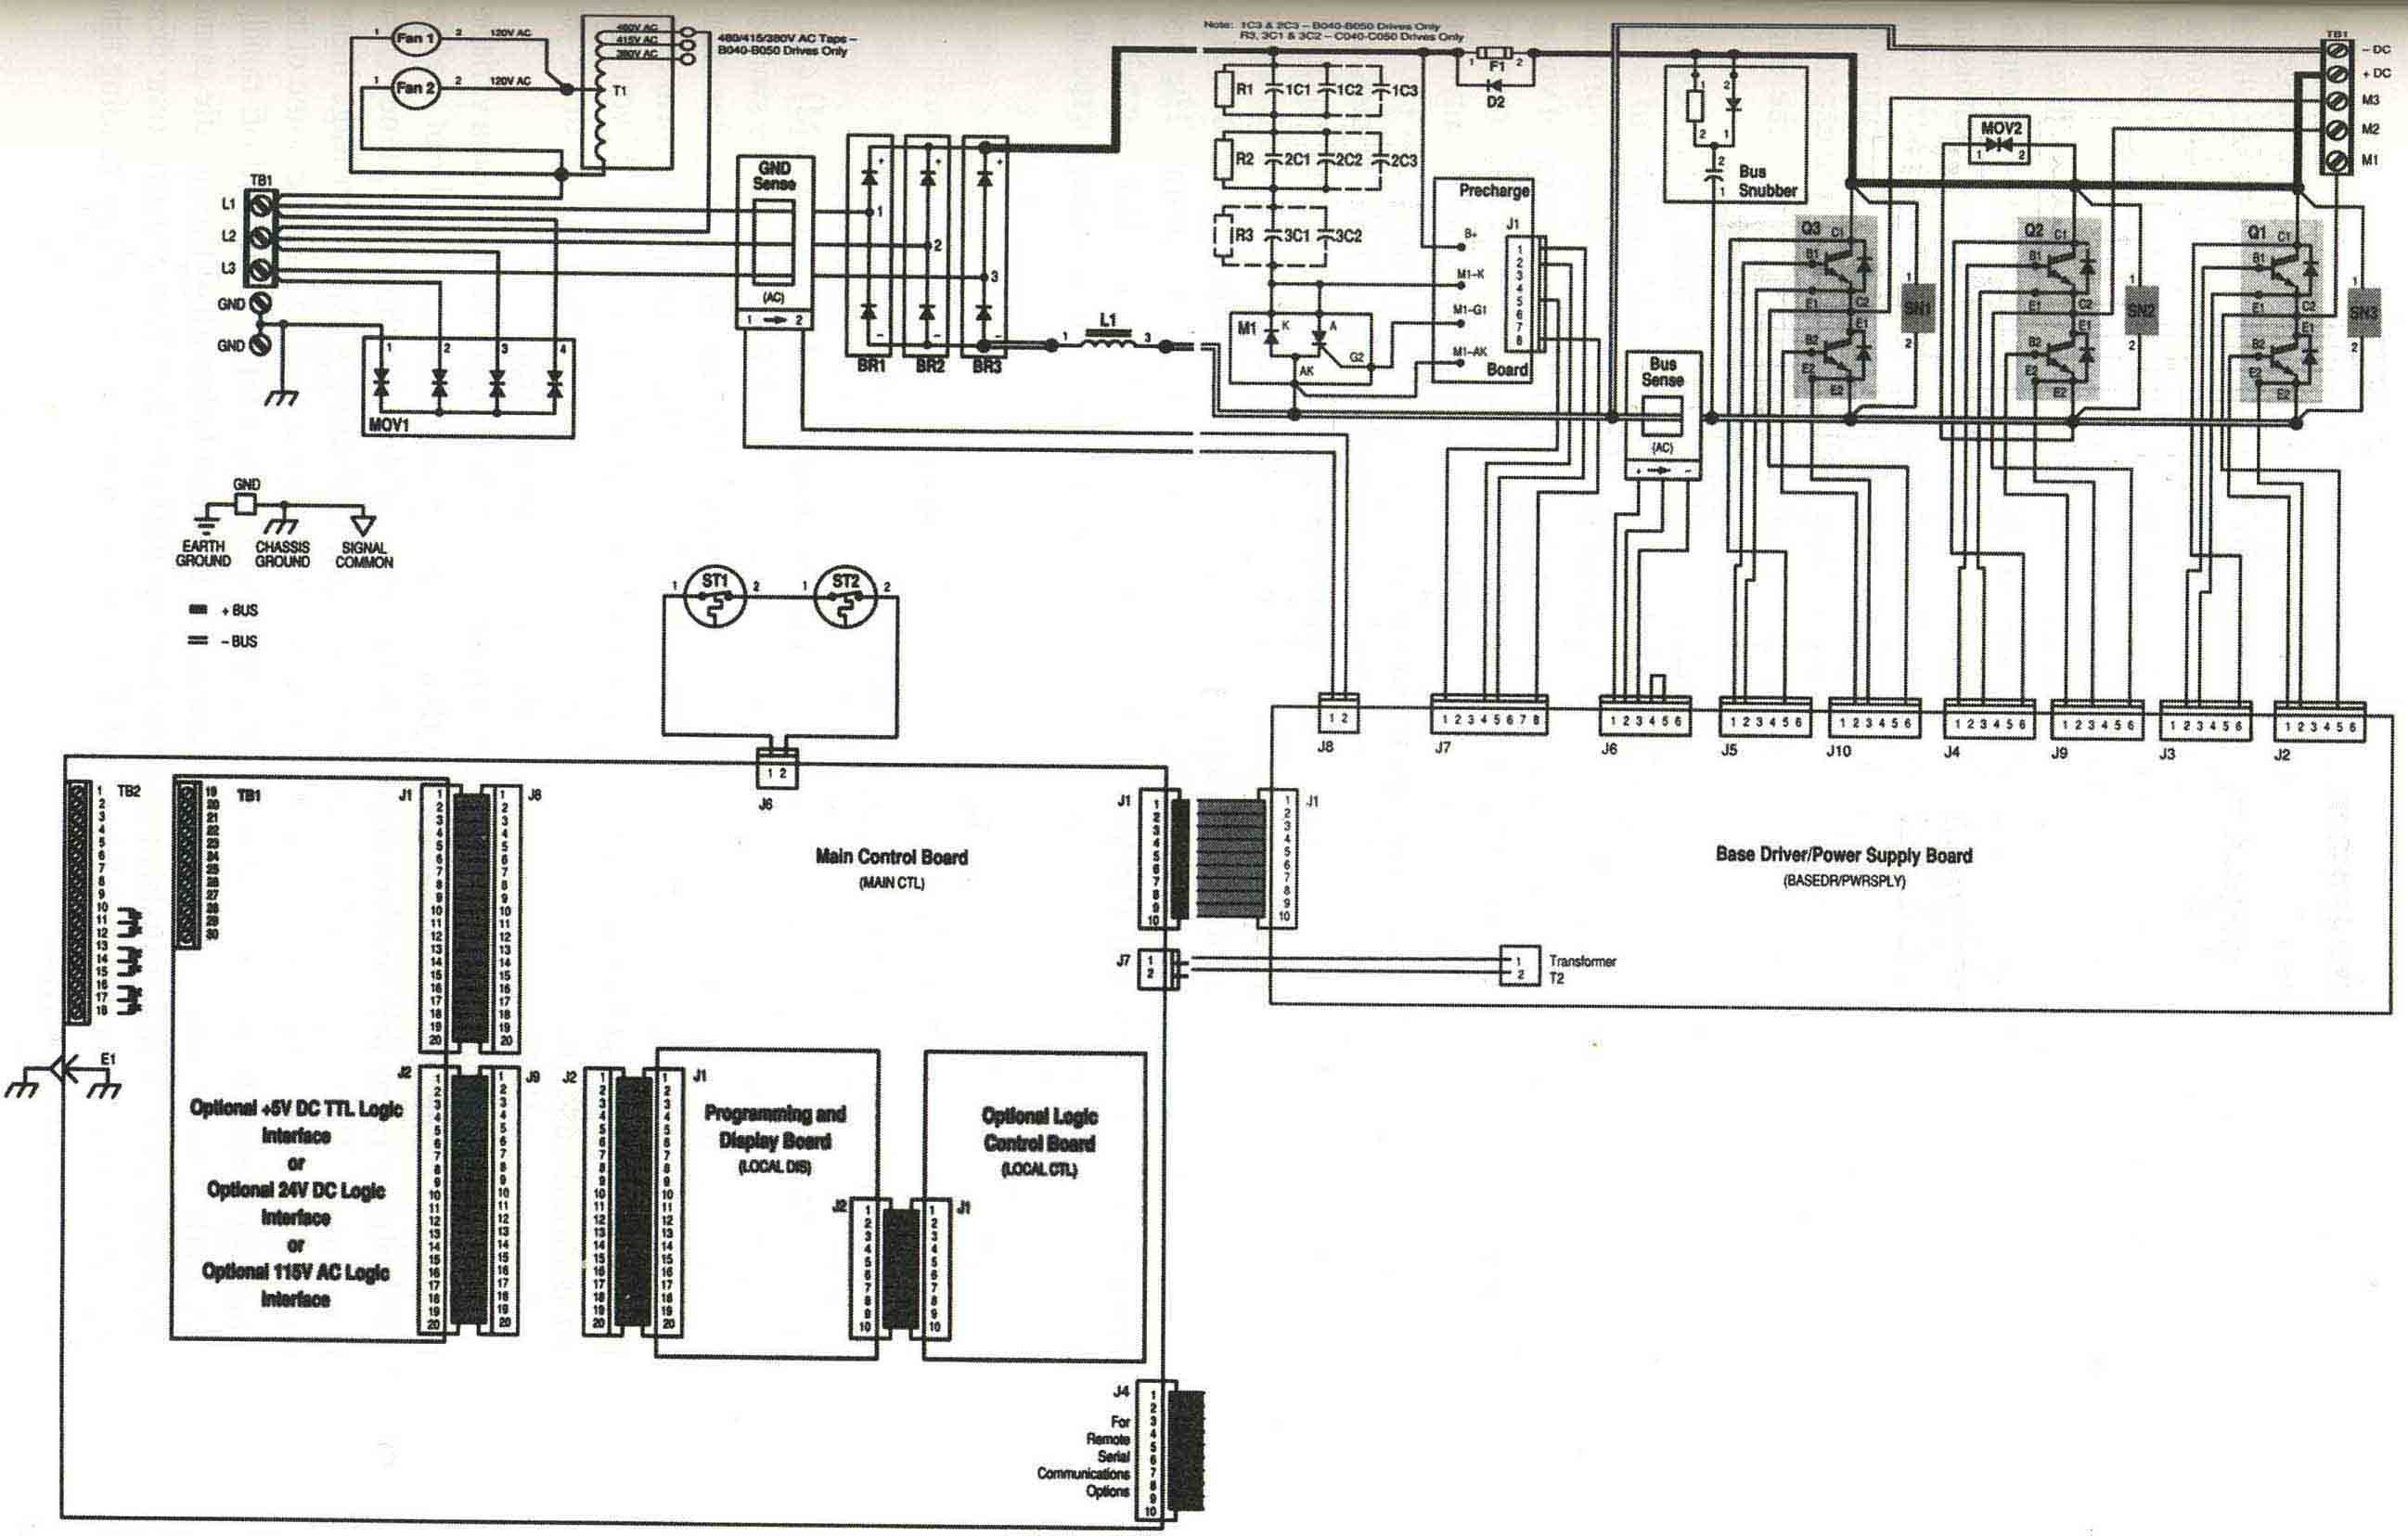 Backhoe Power Steering Diagram Additionally Cat Backhoe Wiring Diagram